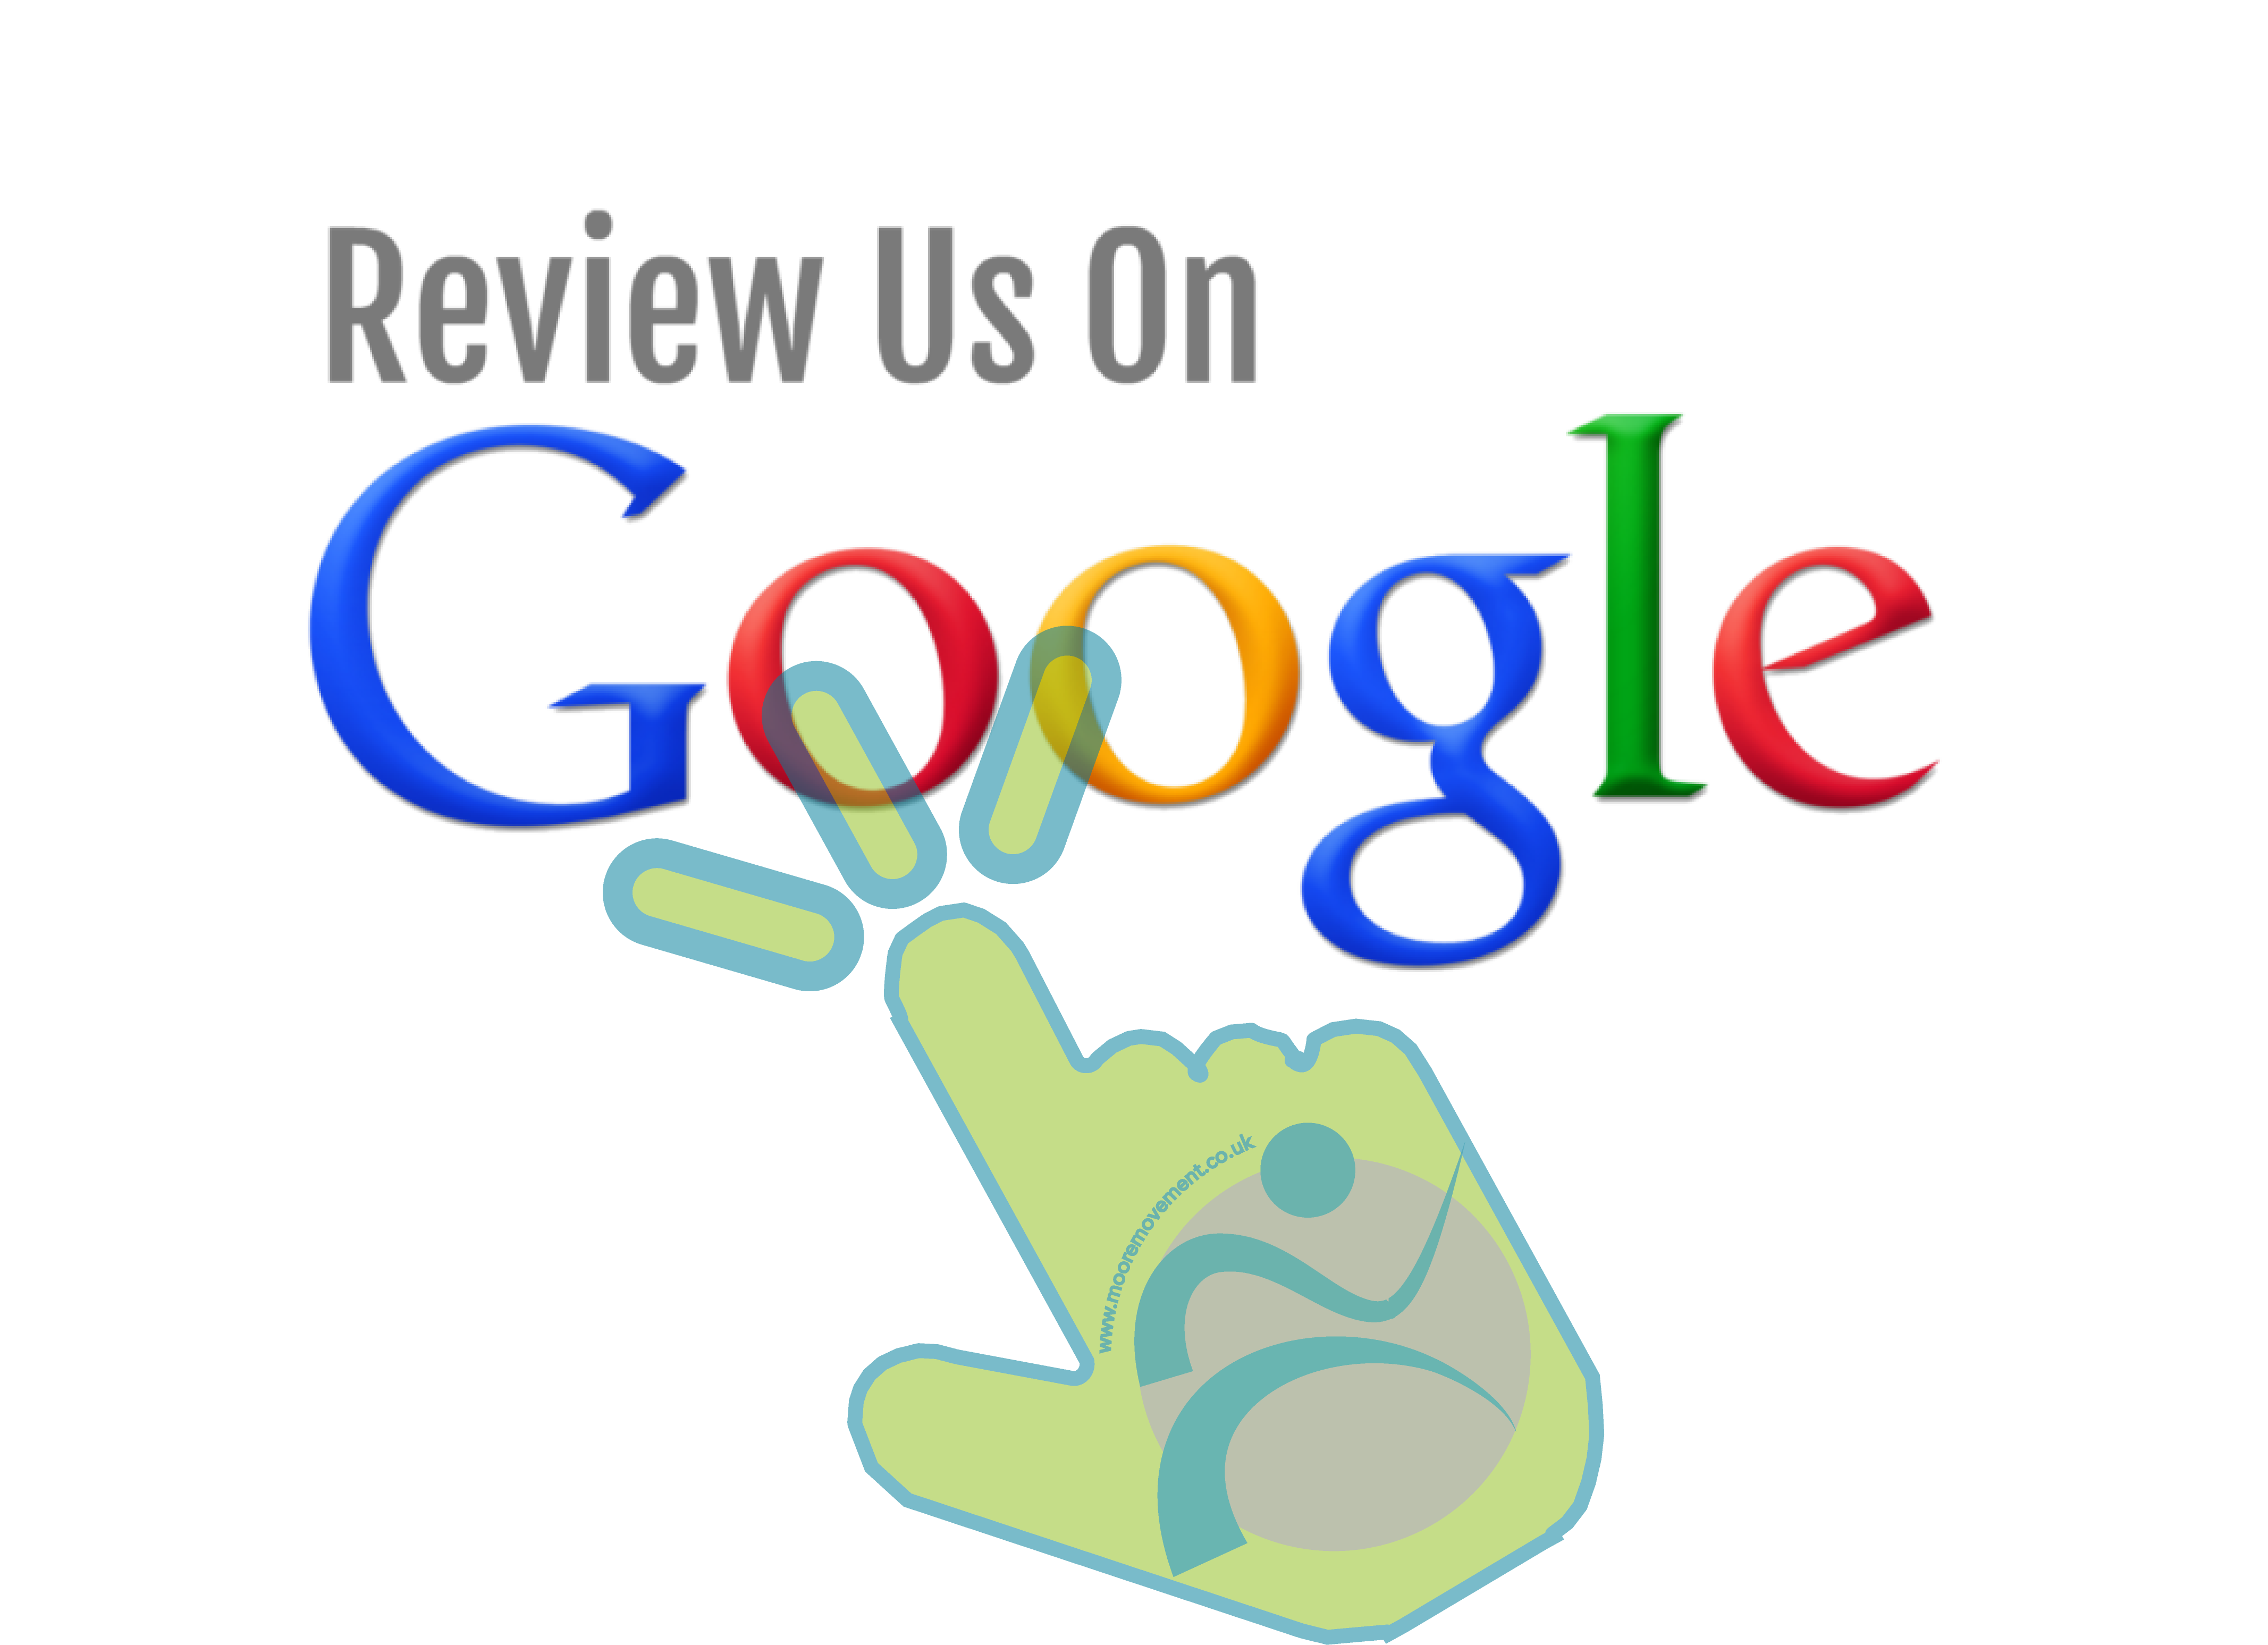 Leave a Google Review icon